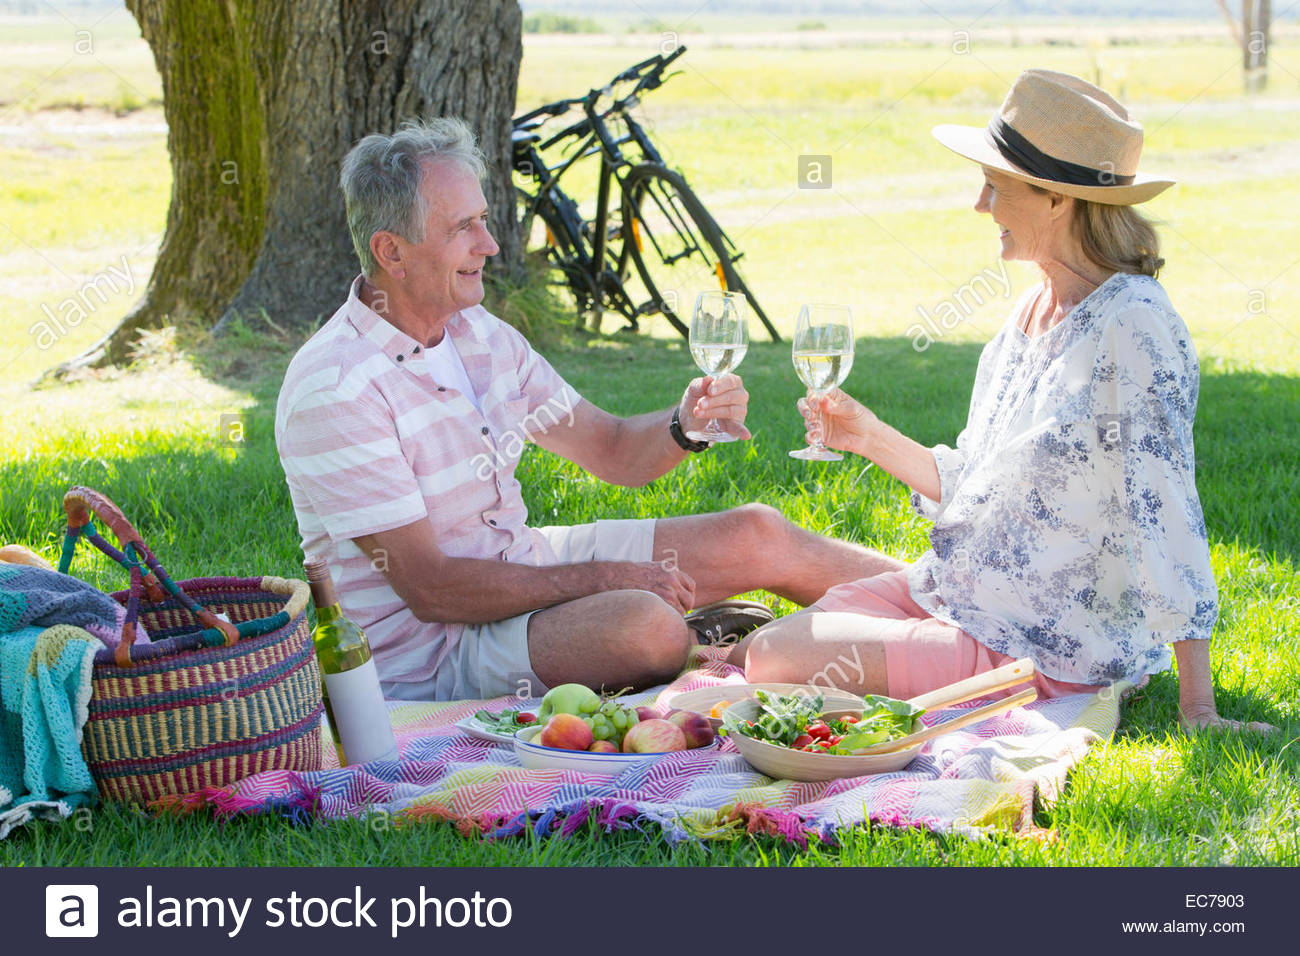 Senior couple drinking wine sitting on picnic blanket - Stock Image